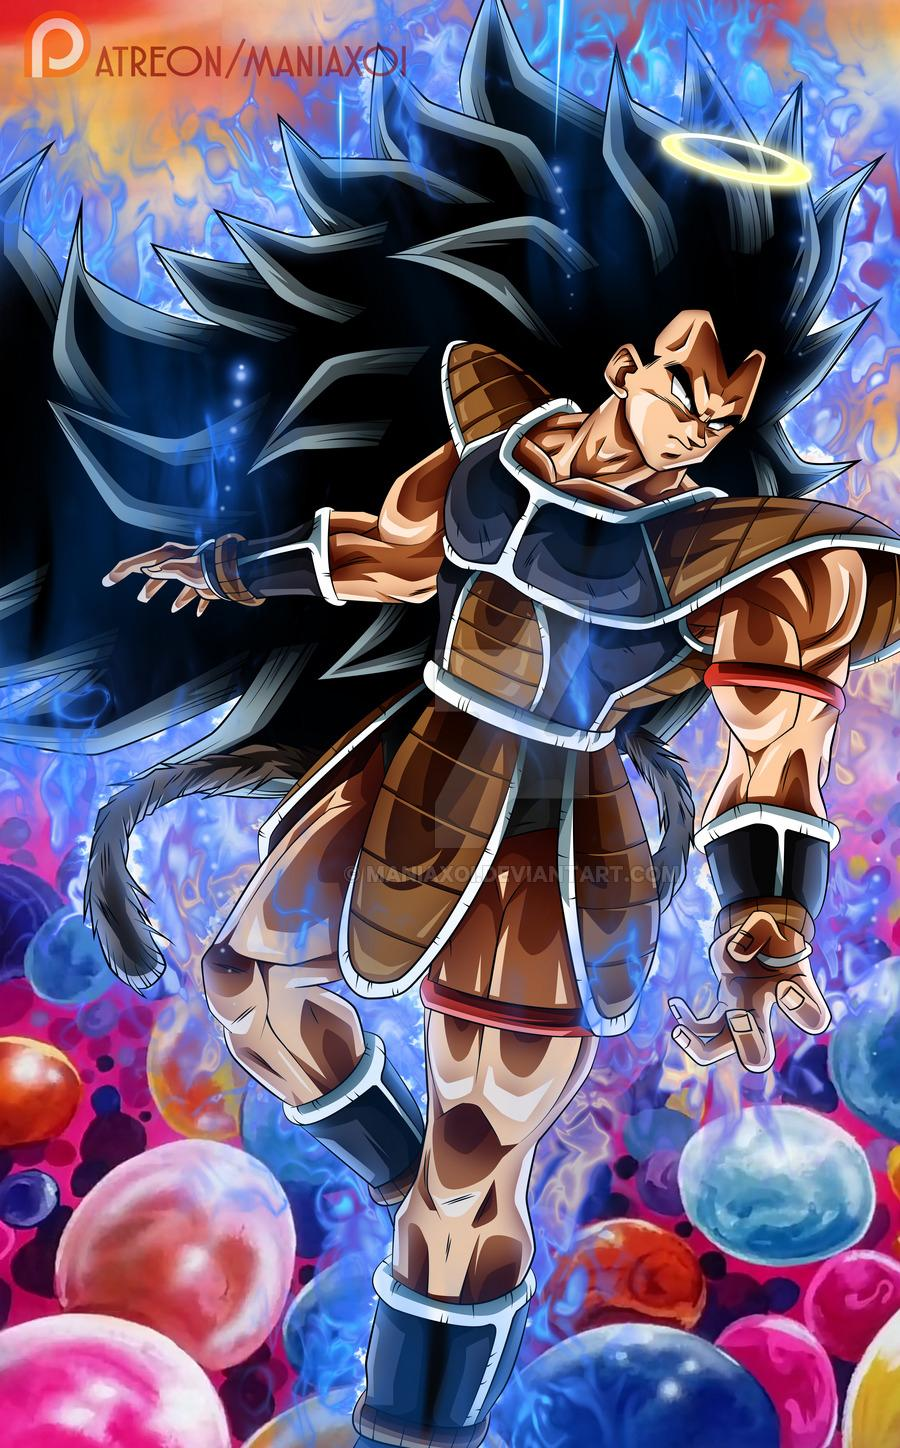 Live wallpaper app for android. Raditz 900x1448 + live wallpaper in comments ...